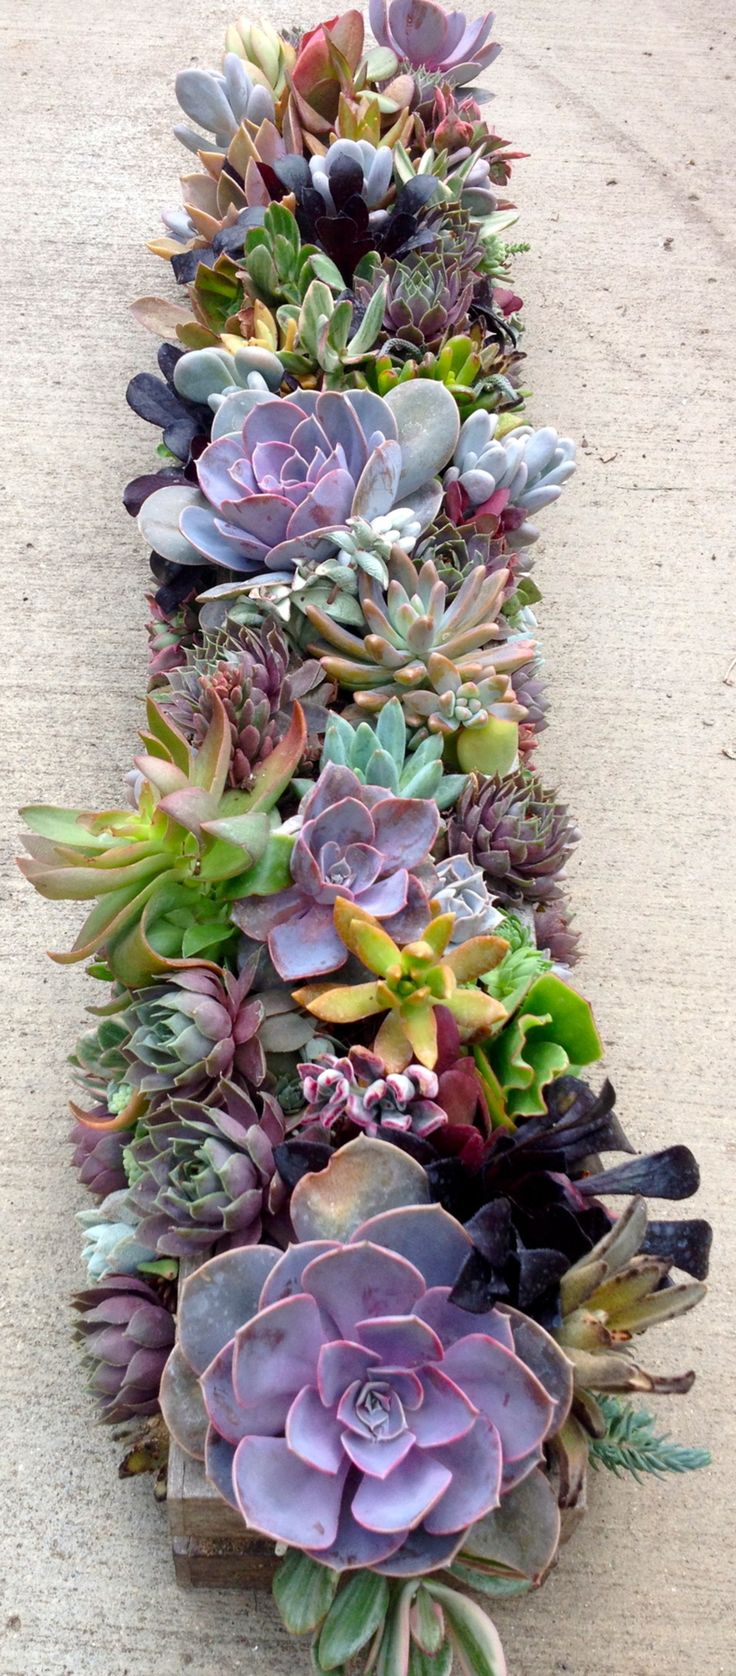 I have these clustered in a fallen log. Next project is mounting 3 old abalone shells vertically on driftwood and planting with sedums to hang on the garden fence.